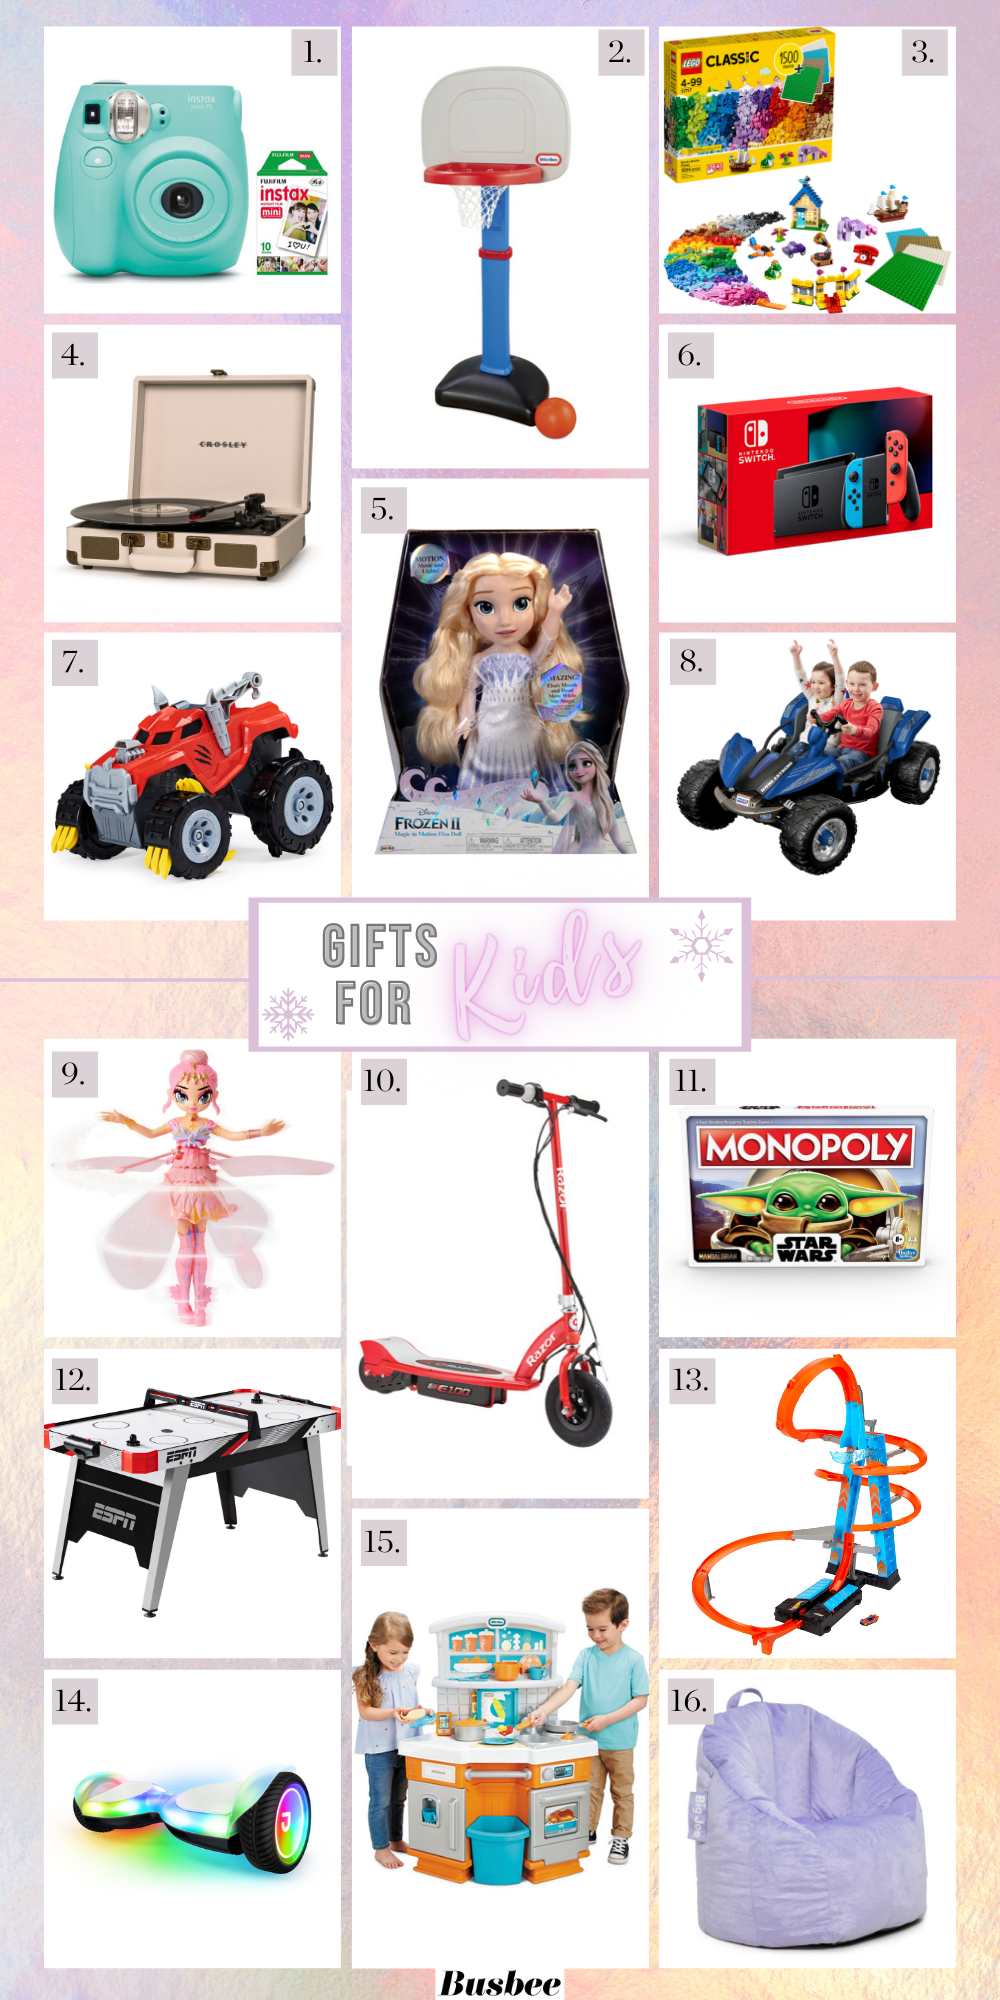 Gifts For Kids, Erin Busbee of Busbee Style sharing the best gifts for kids of all ages all from Walmart.com